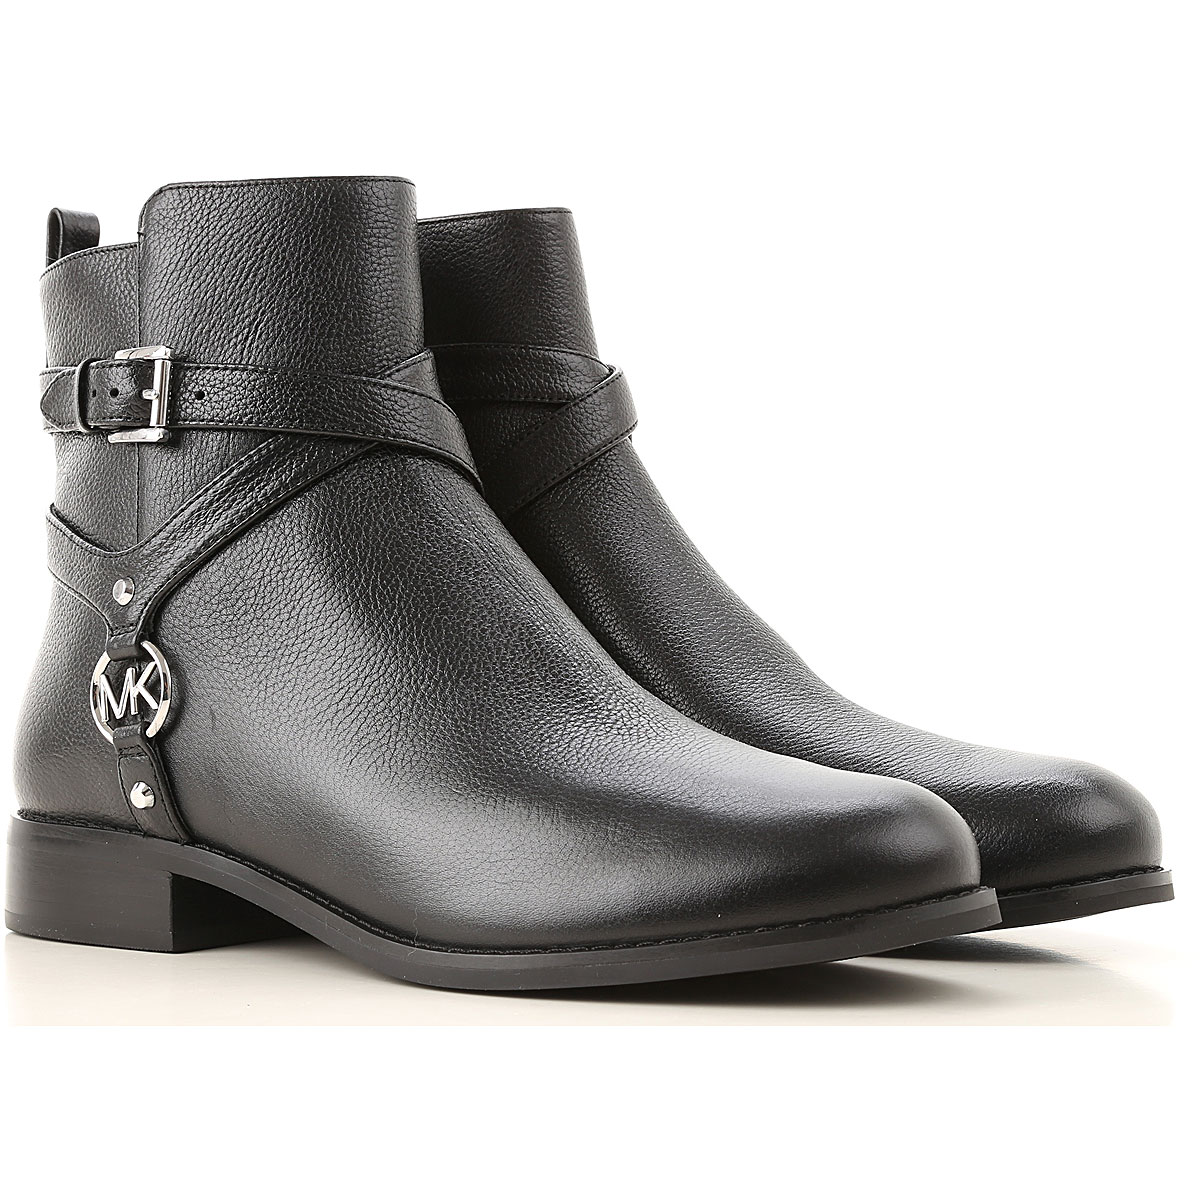 Michael Kors Boots for Women, Booties On Sale, Black, Leather, 2019, 6 7 8 9